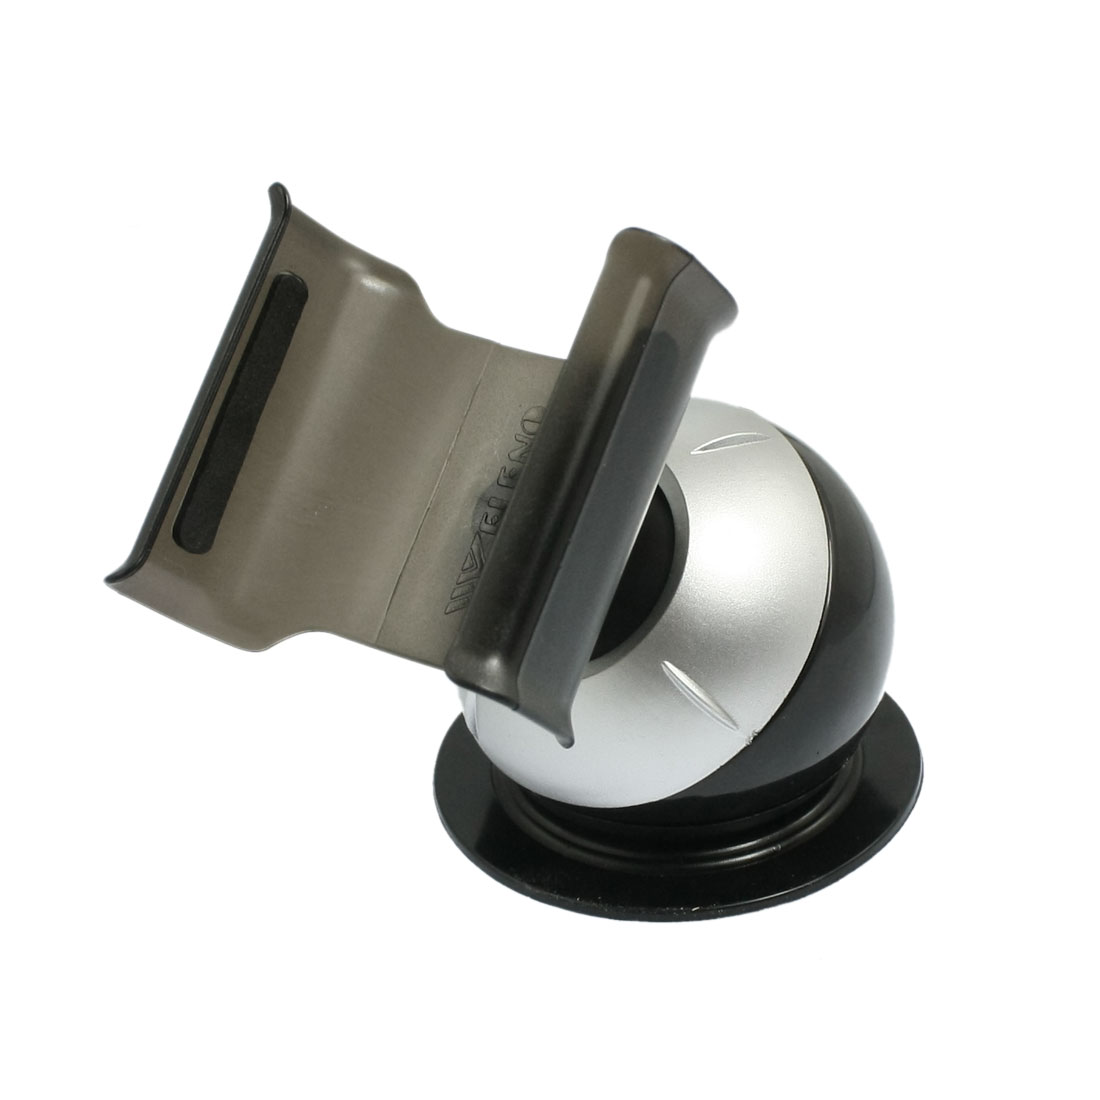 Car Mount Windshield Cradle Holder Stand Black Silver Tone for Cell Phone